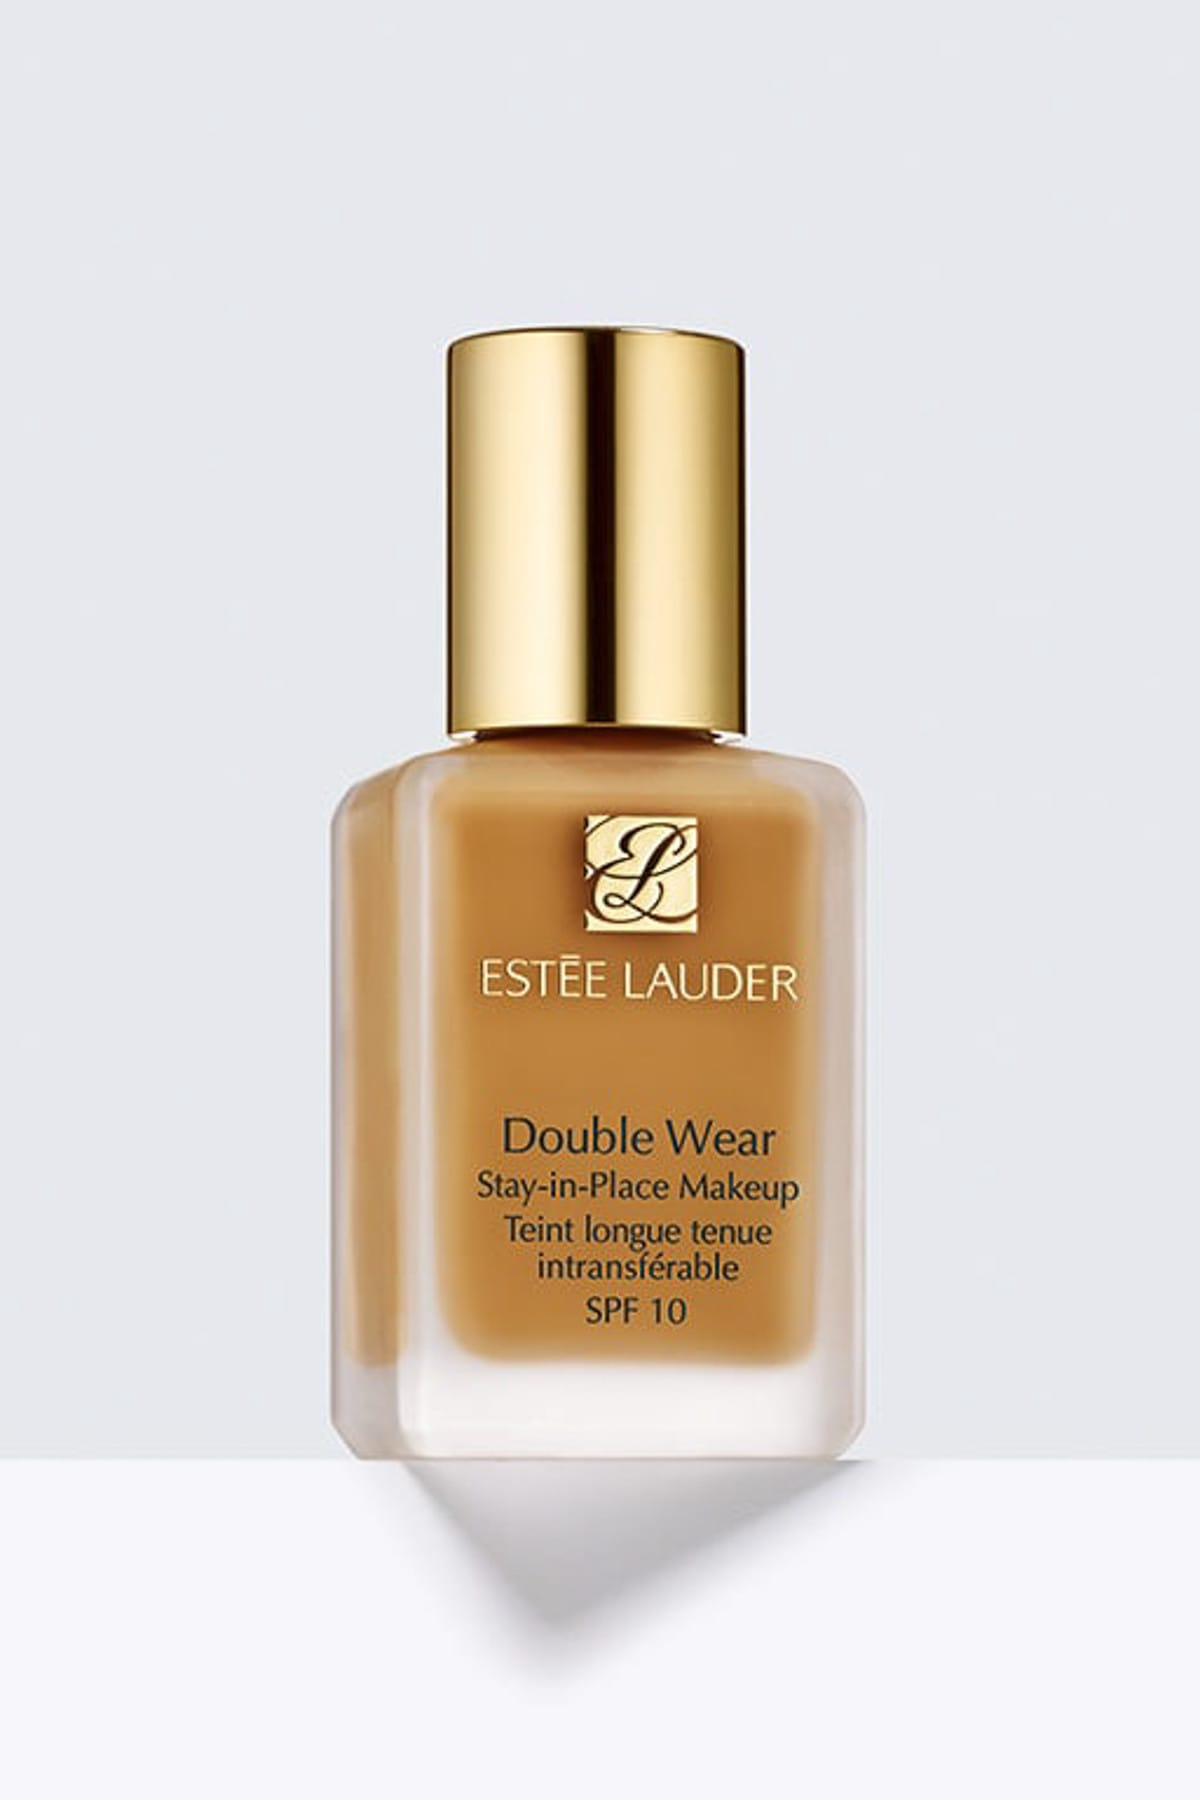 Estee Lauder Fondöten - Double Wear Foundation S.I.P Spf 10 4N2 Spiced Sand 30 ml 027131977575 1